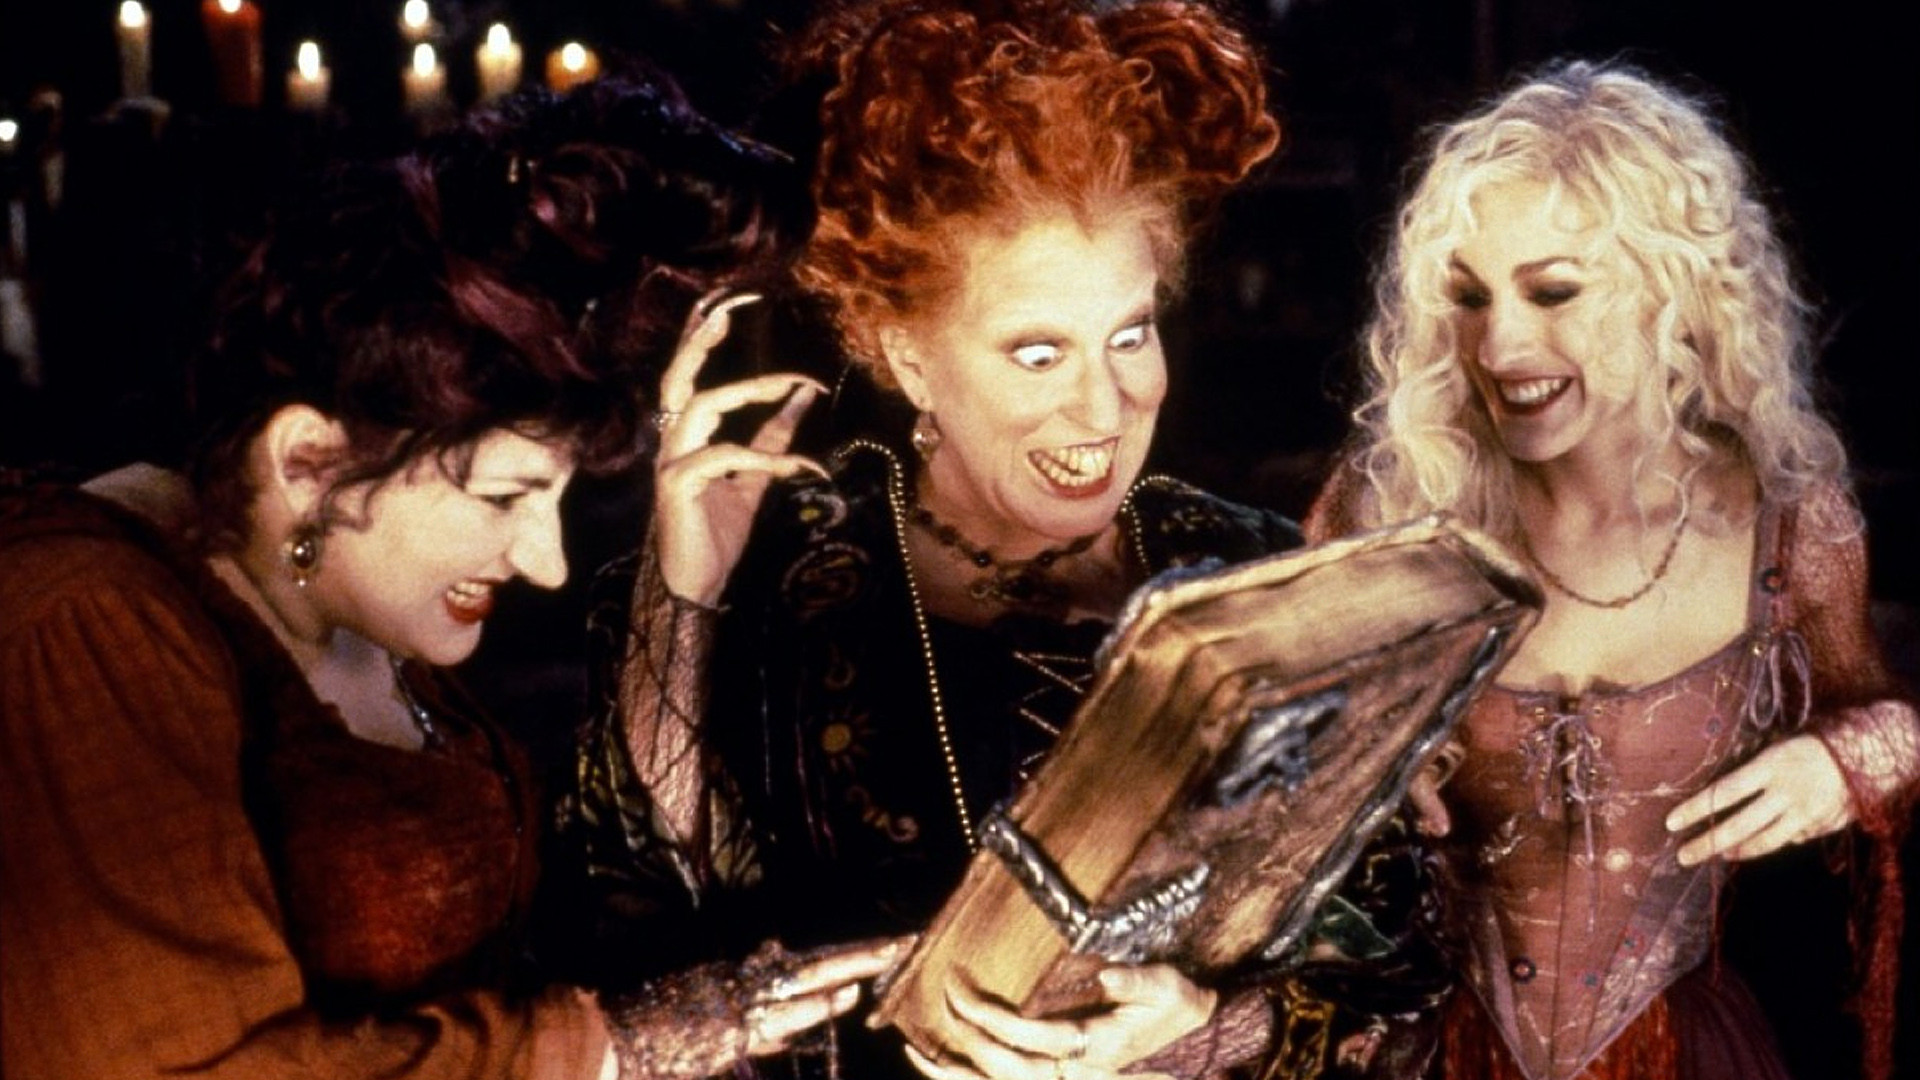 Hocus Pocus is a 1993 American comedy horror fantasy film directed by Kenny Ortega starring Bette Midler Kathy Najimy and Sarah Jessica Parker written by Neil